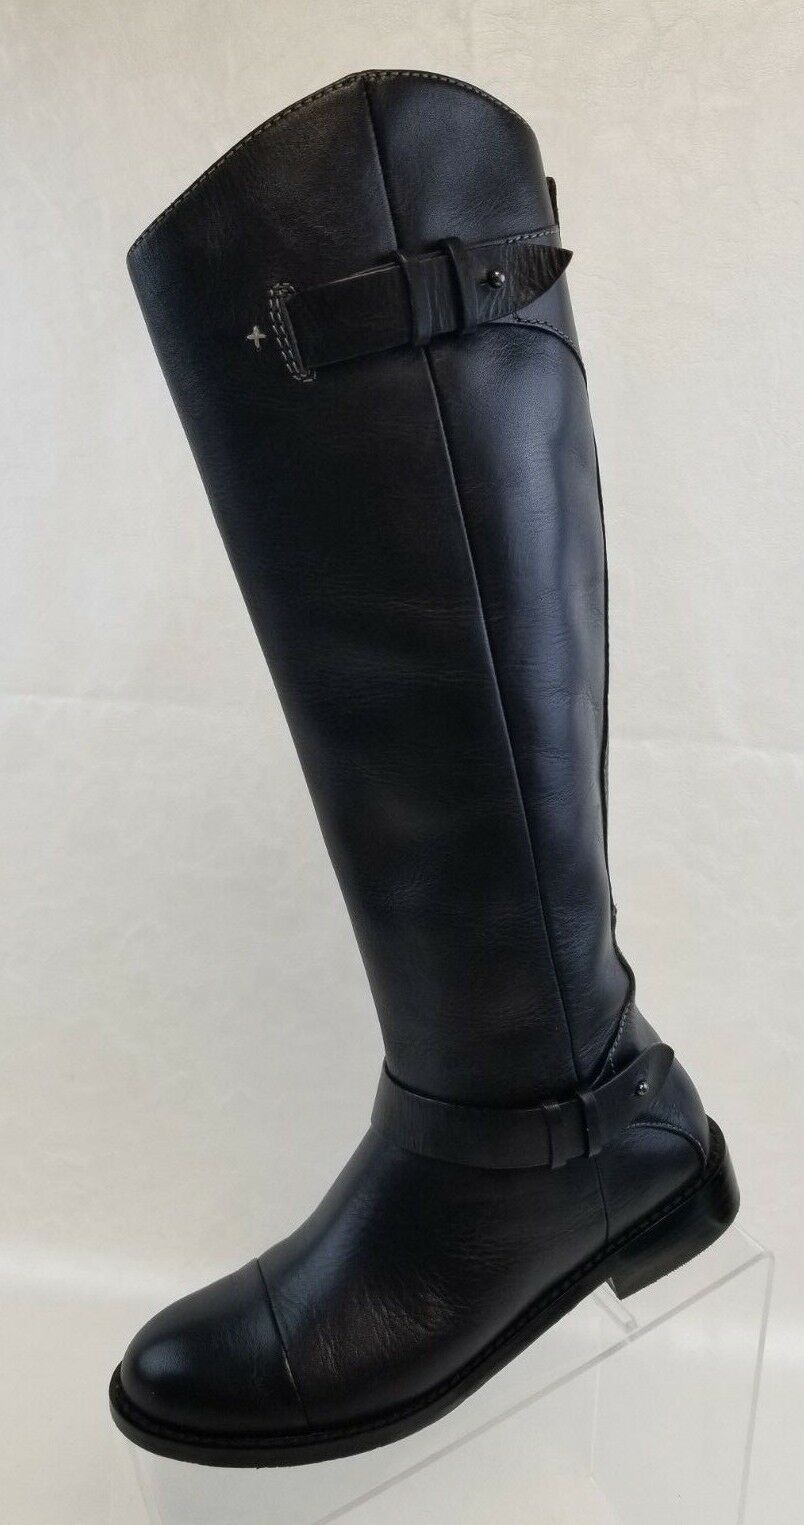 Halogen Knee Knee Knee High Boots Girls Riding Zip Black Leather Pull On Size 4.5M f76e21